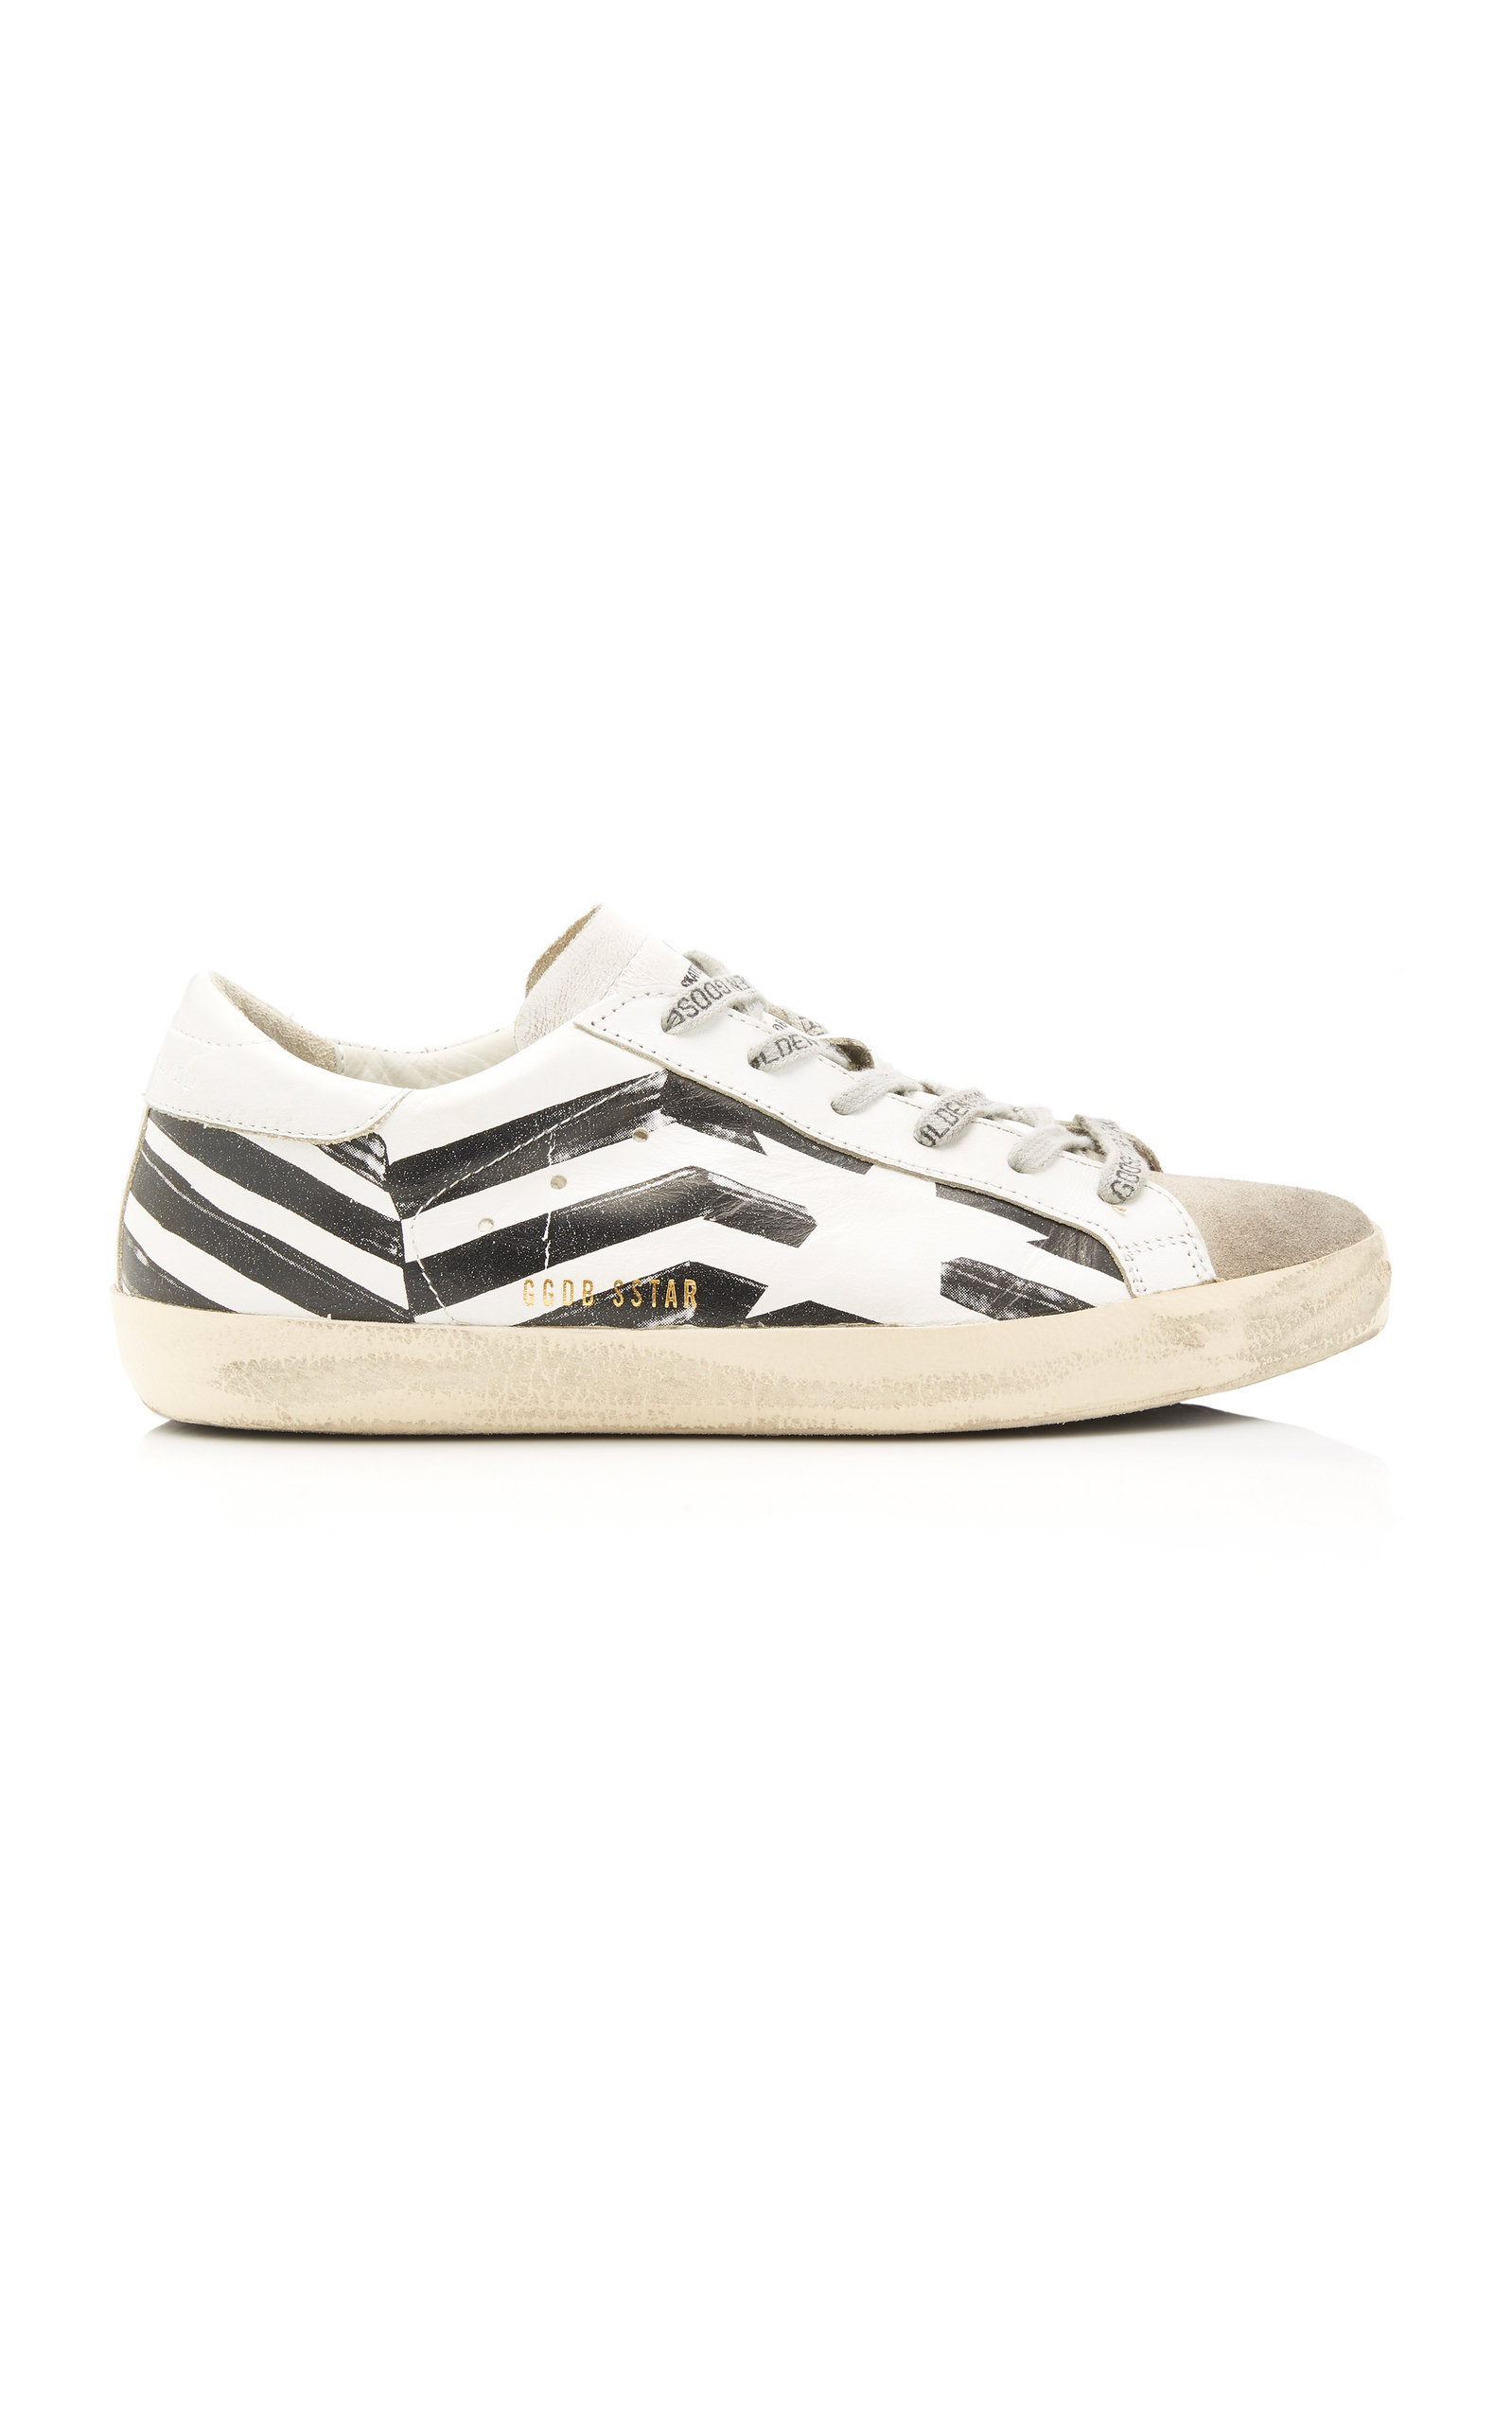 Golden Goose - Women's Superstar Striped Leather And Suede Sneakers - Black/white - Moda Operandi